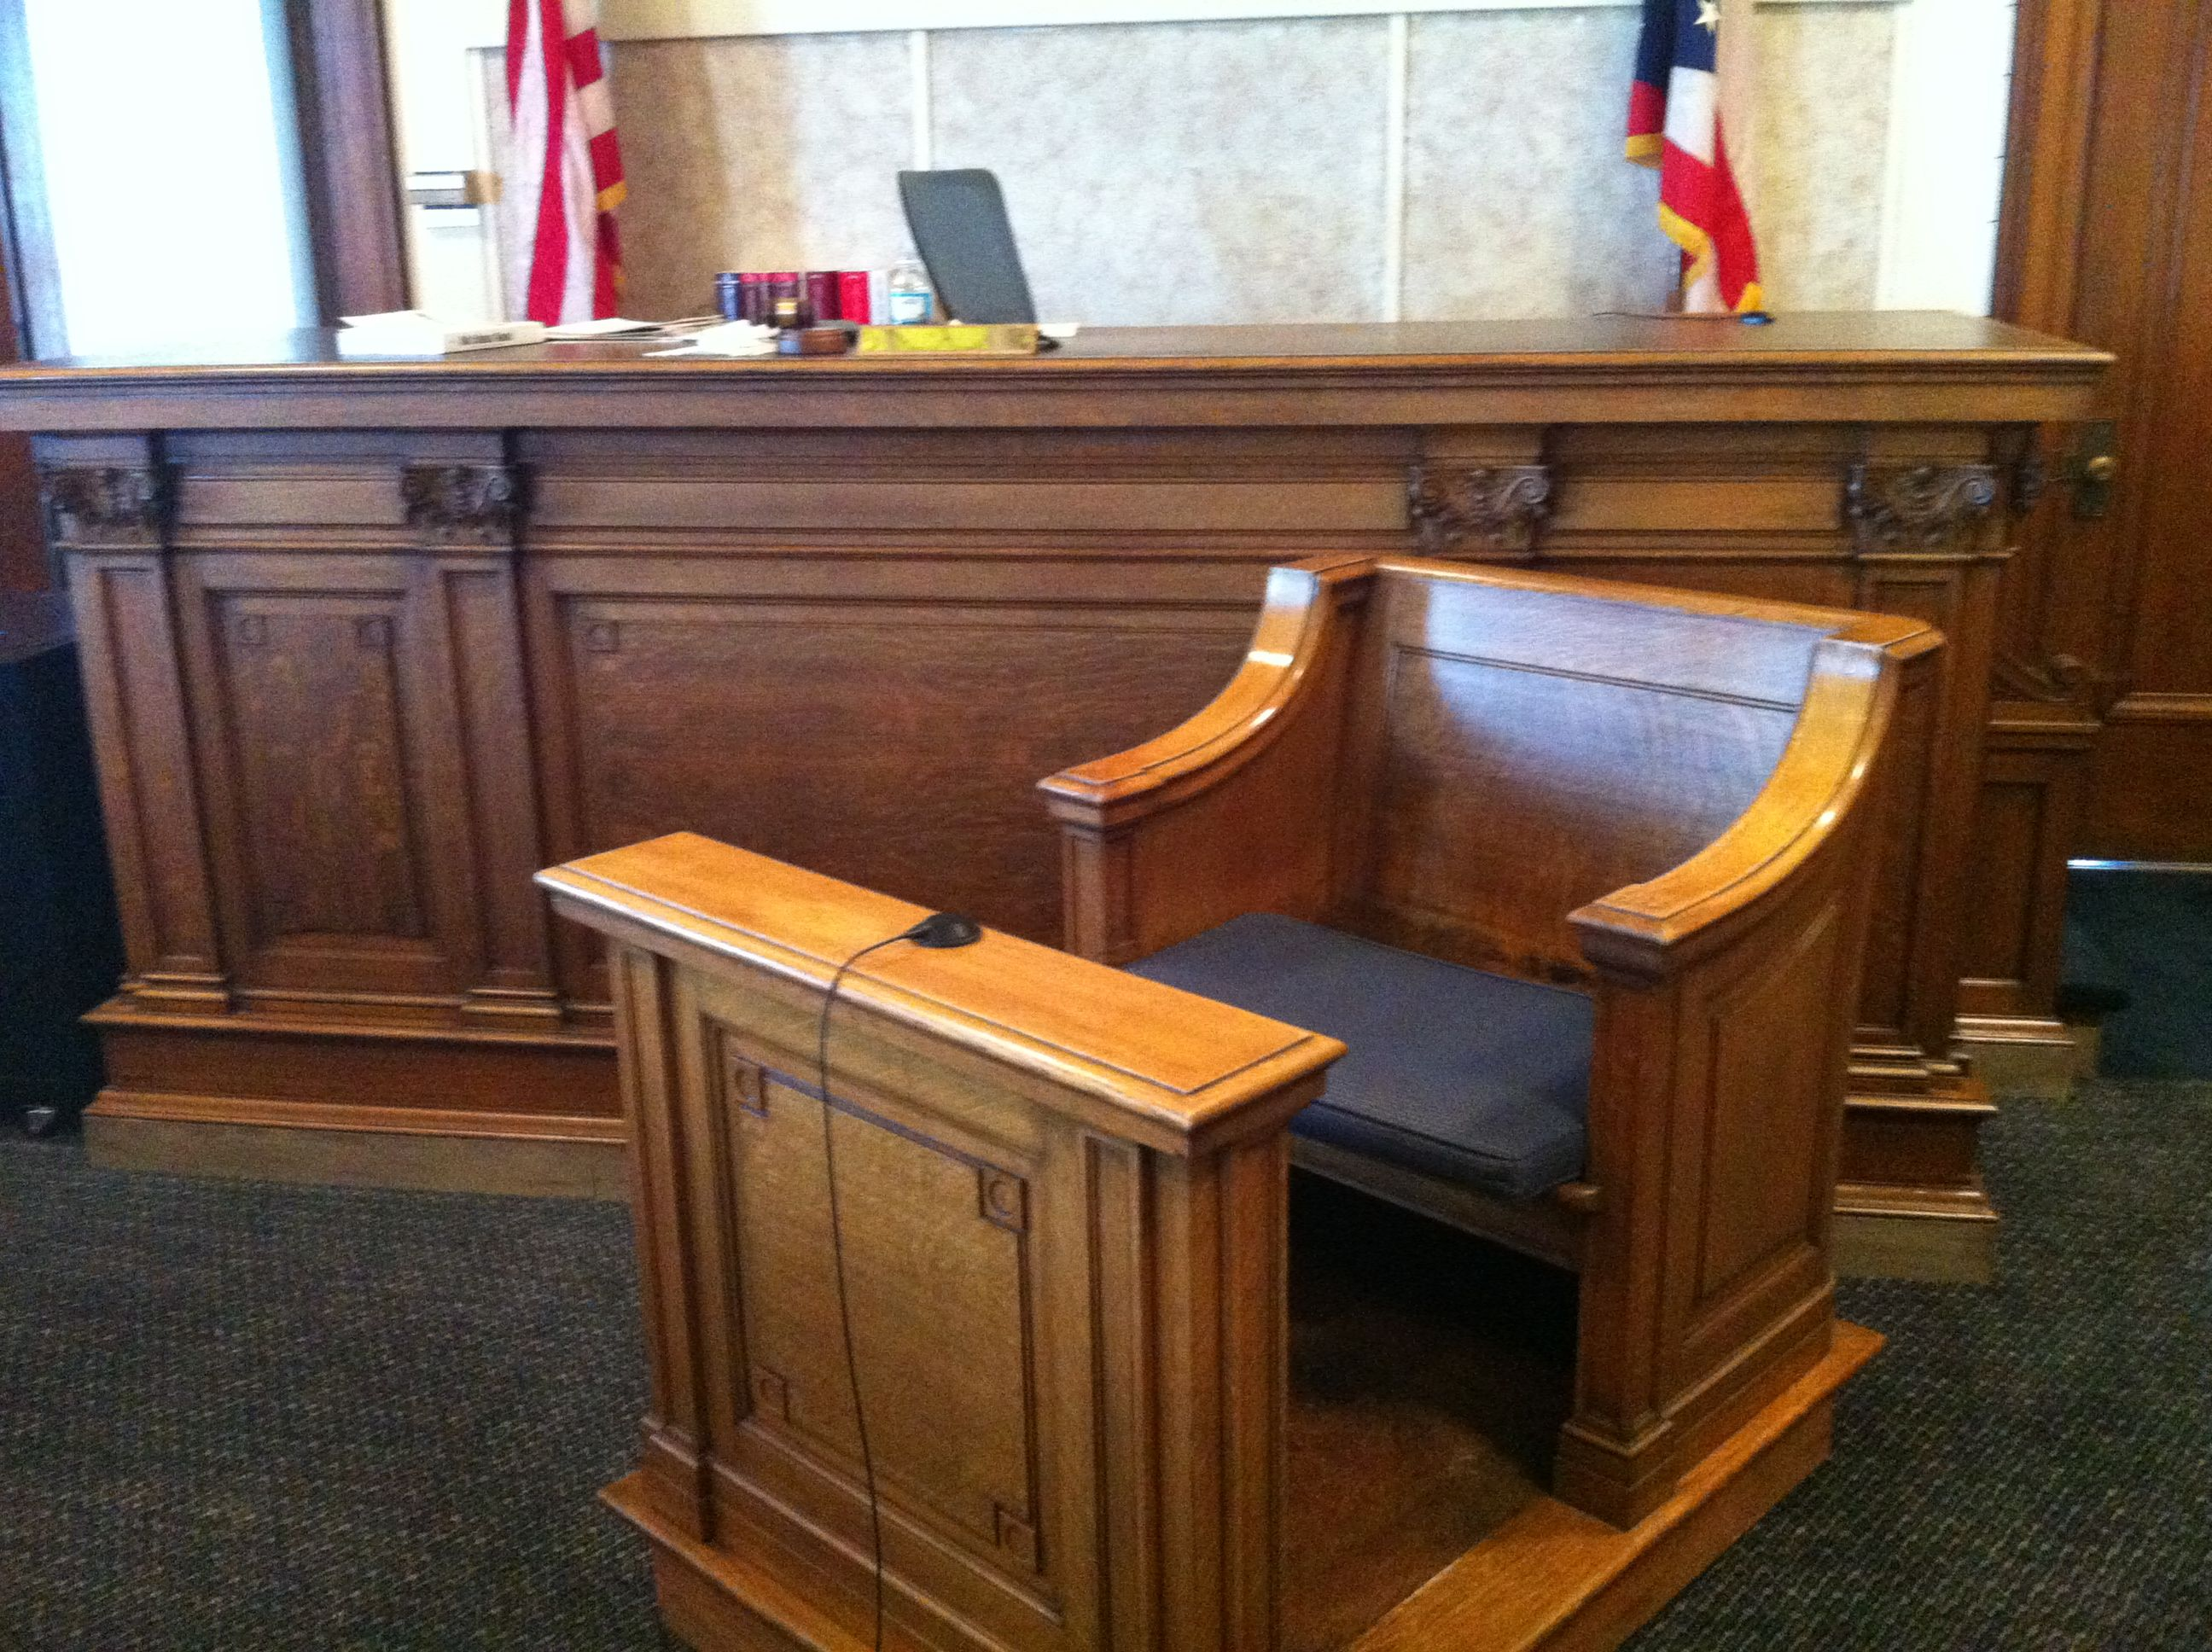 This is the witness chair at the Hardin County Common Pleas Court